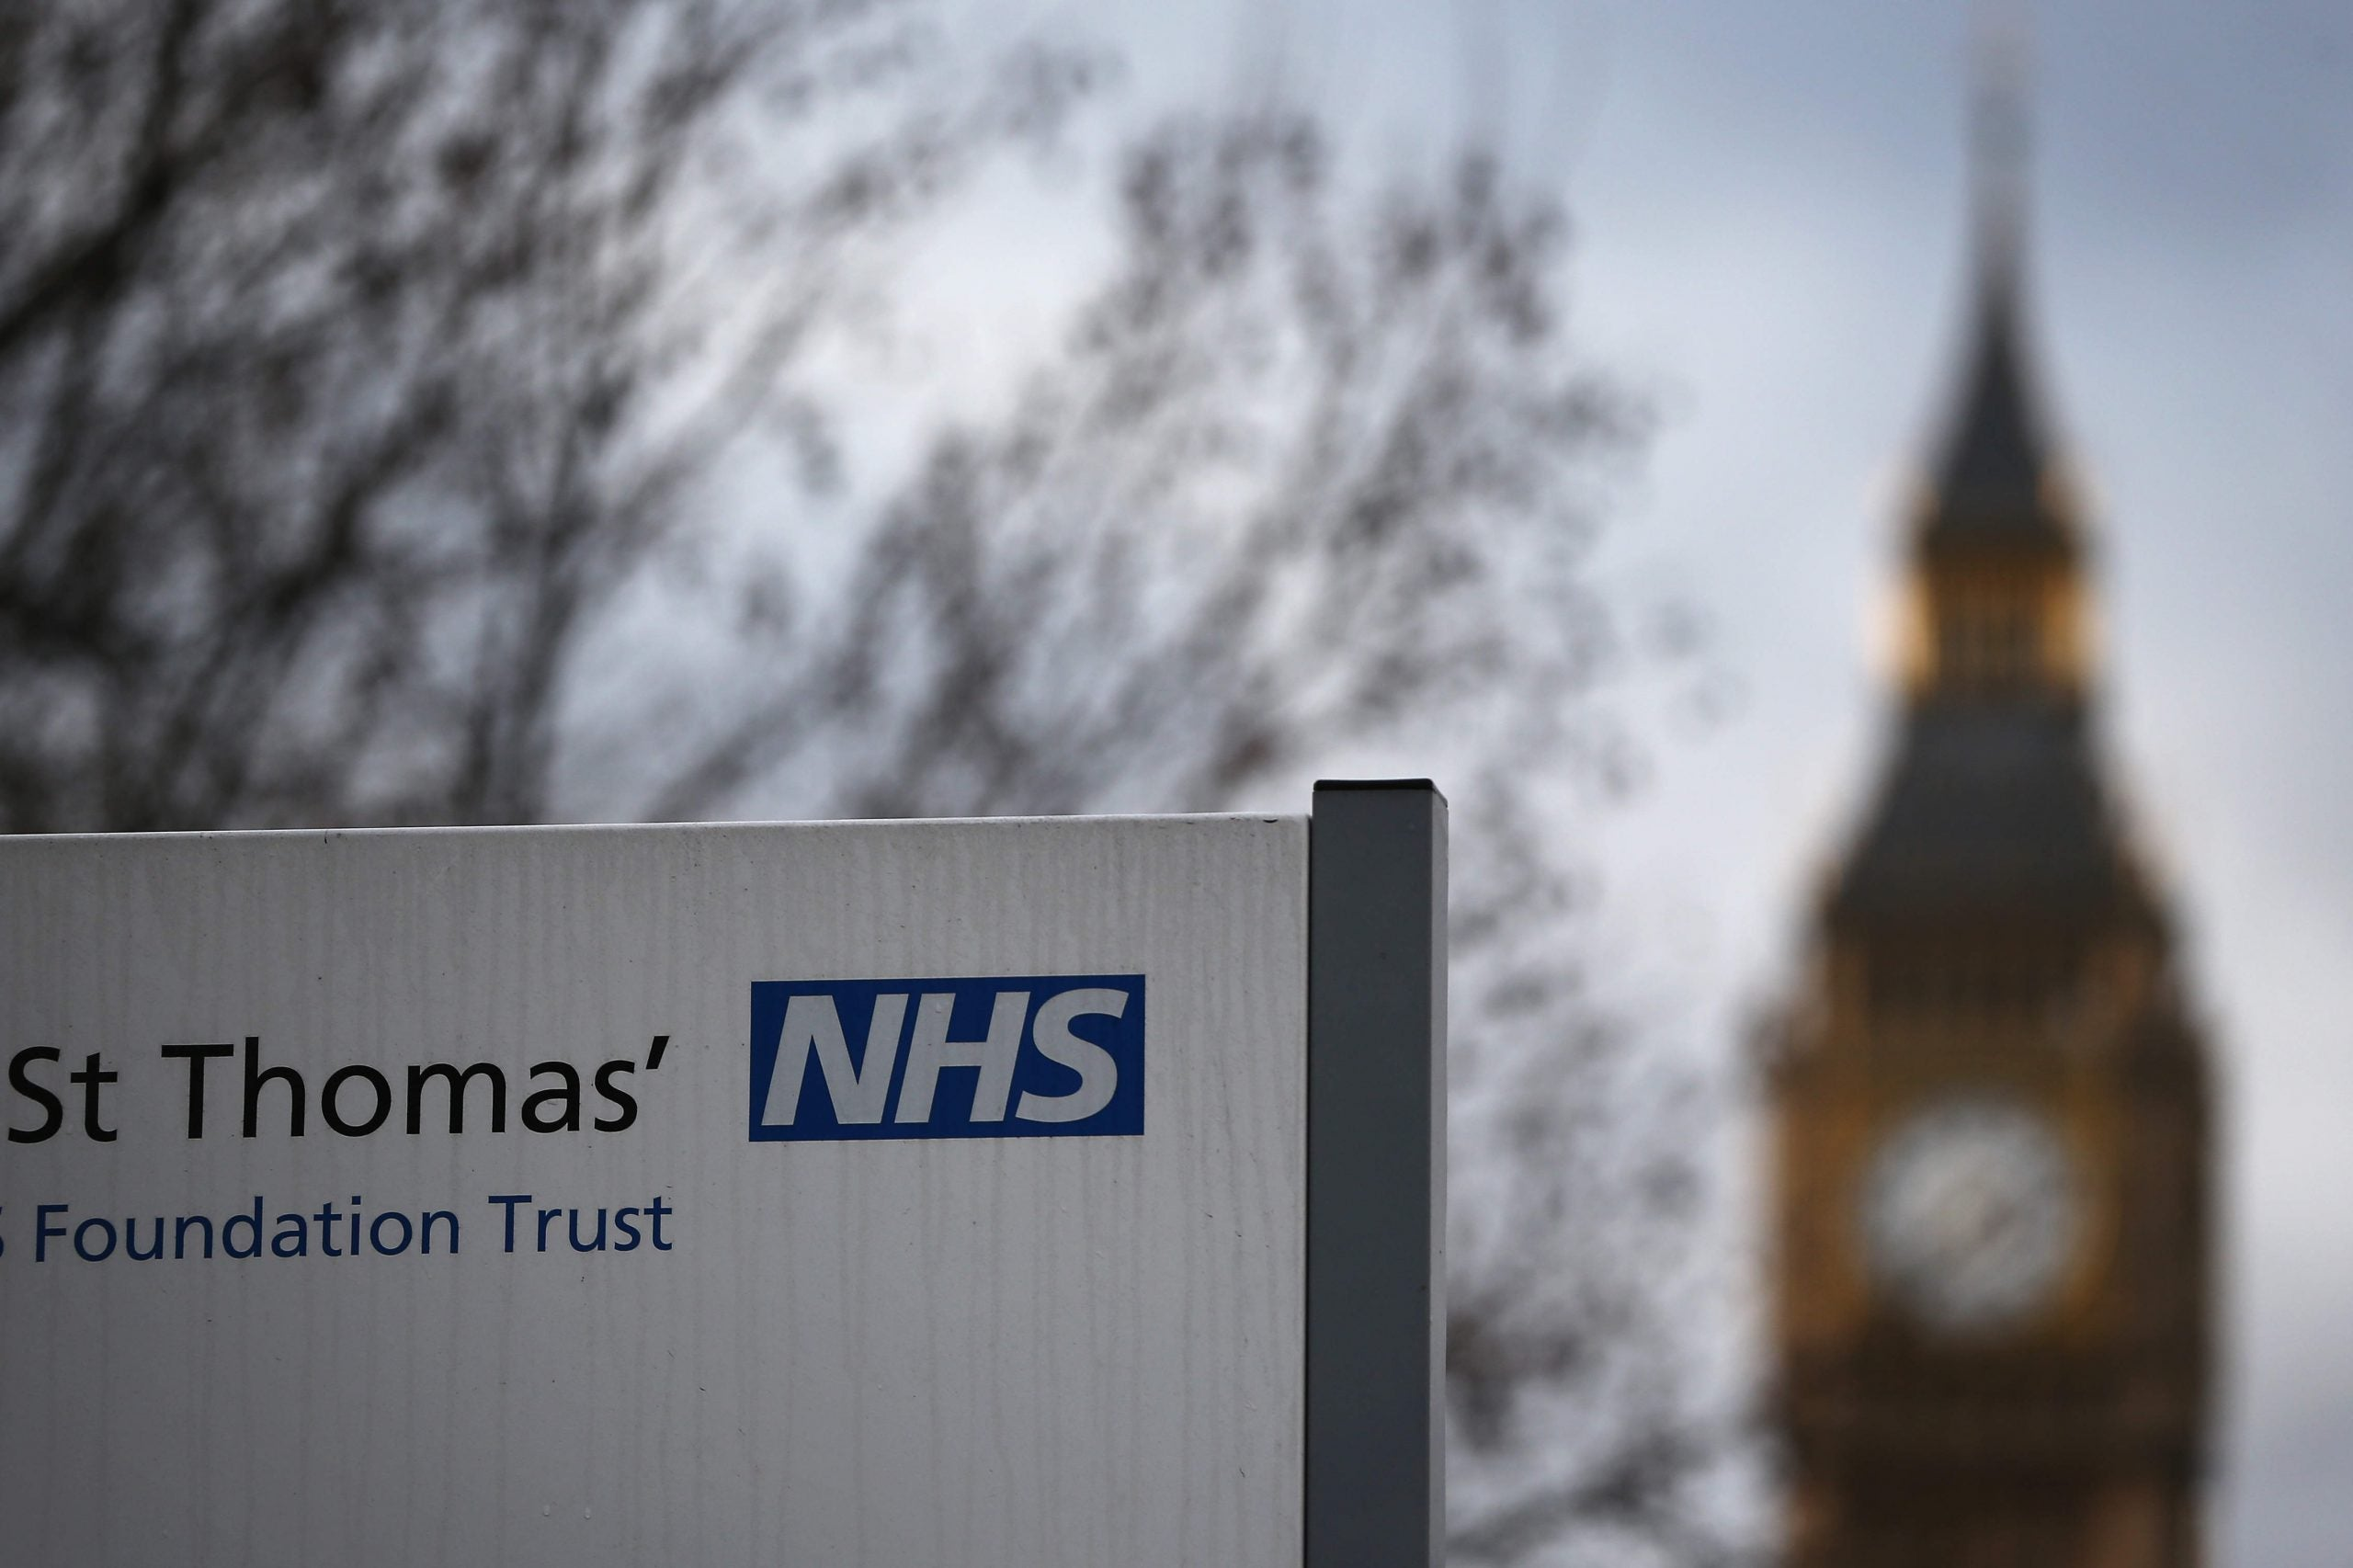 Big Pharma gets public money from the NHS – but doesn't put anything back